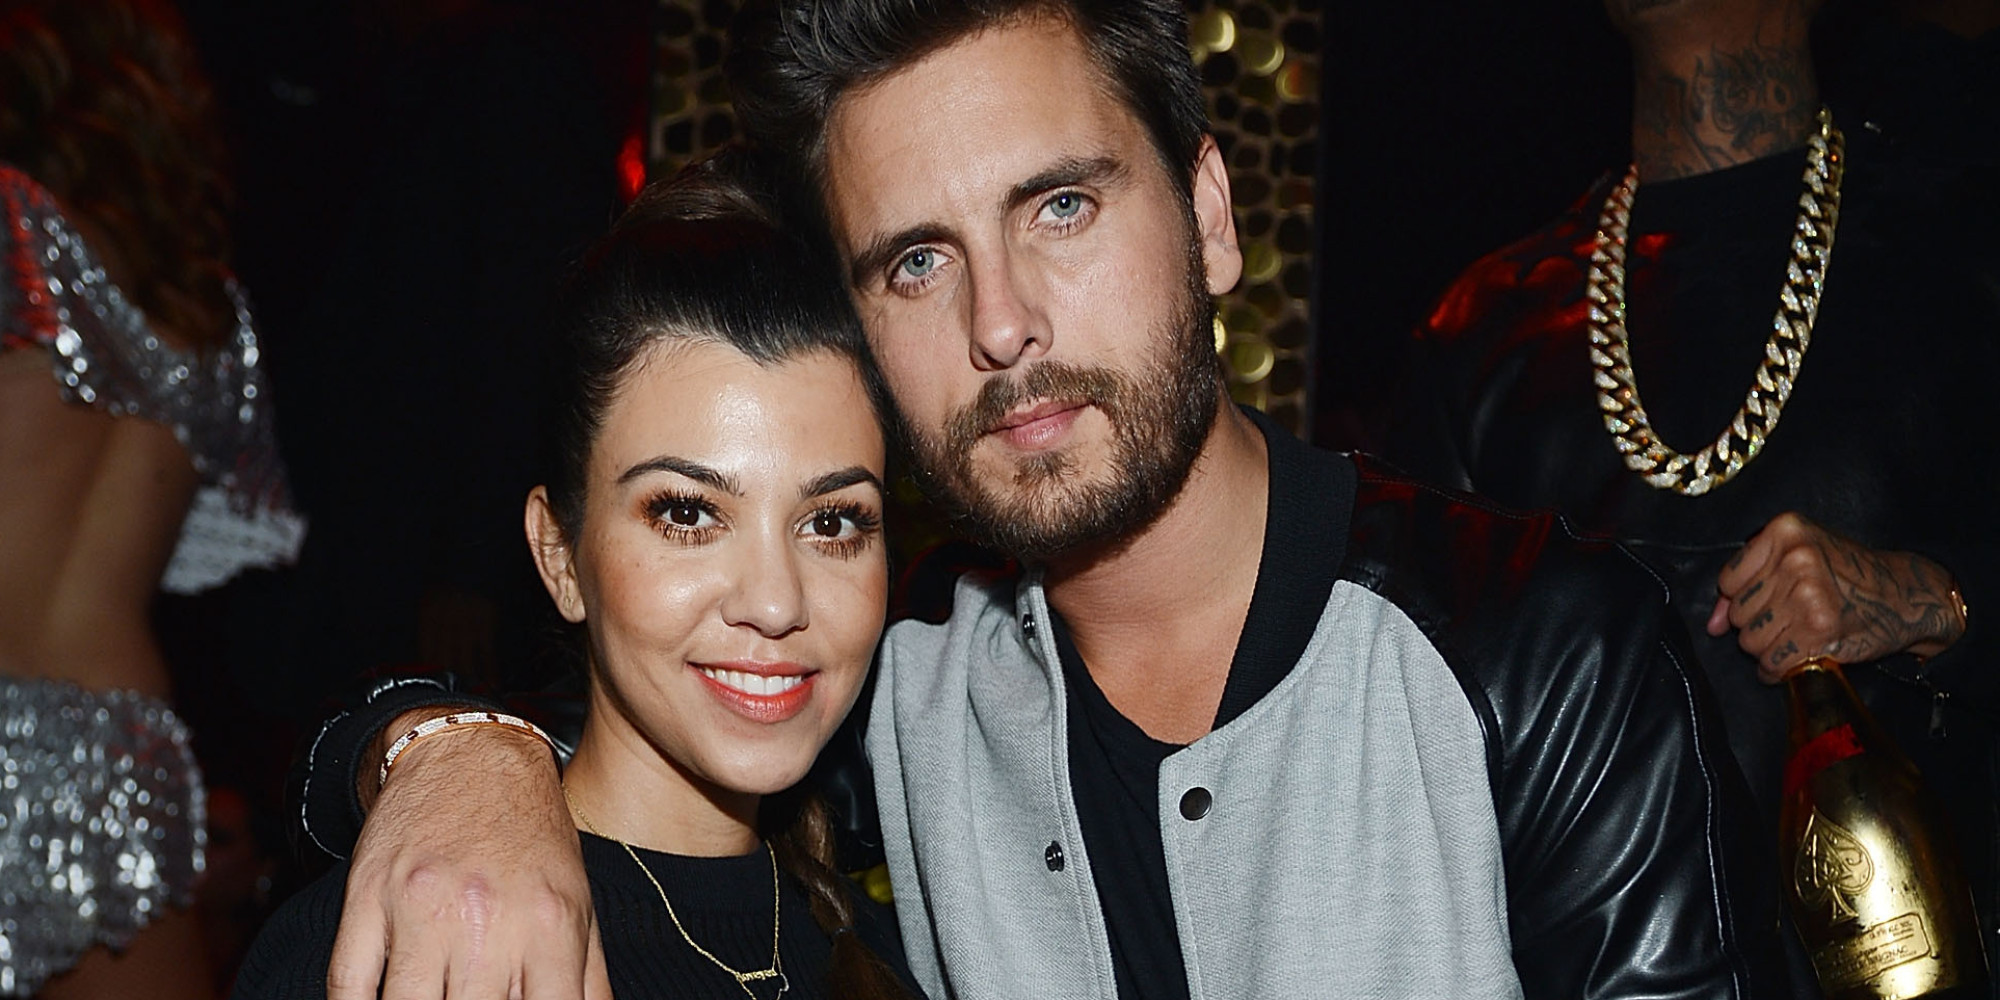 LAS VEGAS, NV - OCTOBER 25: (EXCLUSIVE COVERAGE) Kourtney Kardashian and Scott Disick celebrate Kim Kardashian's 33rd birthday at Tao Las Vegas on October 25, 2013 in Las Vegas, Nevada. (Photo by Denise Truscello/WireImage)